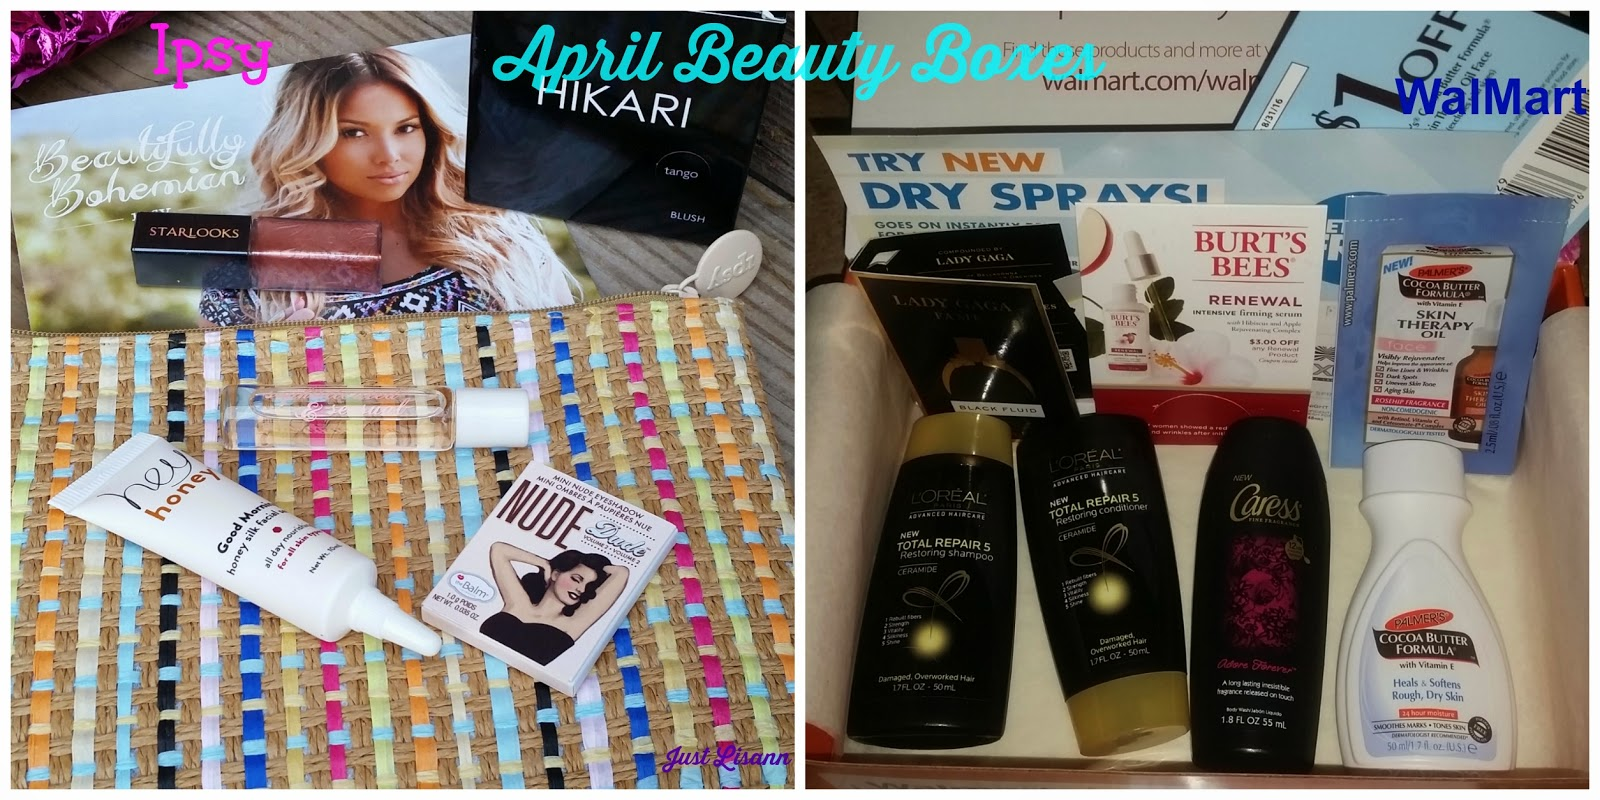 April beauty box 2015